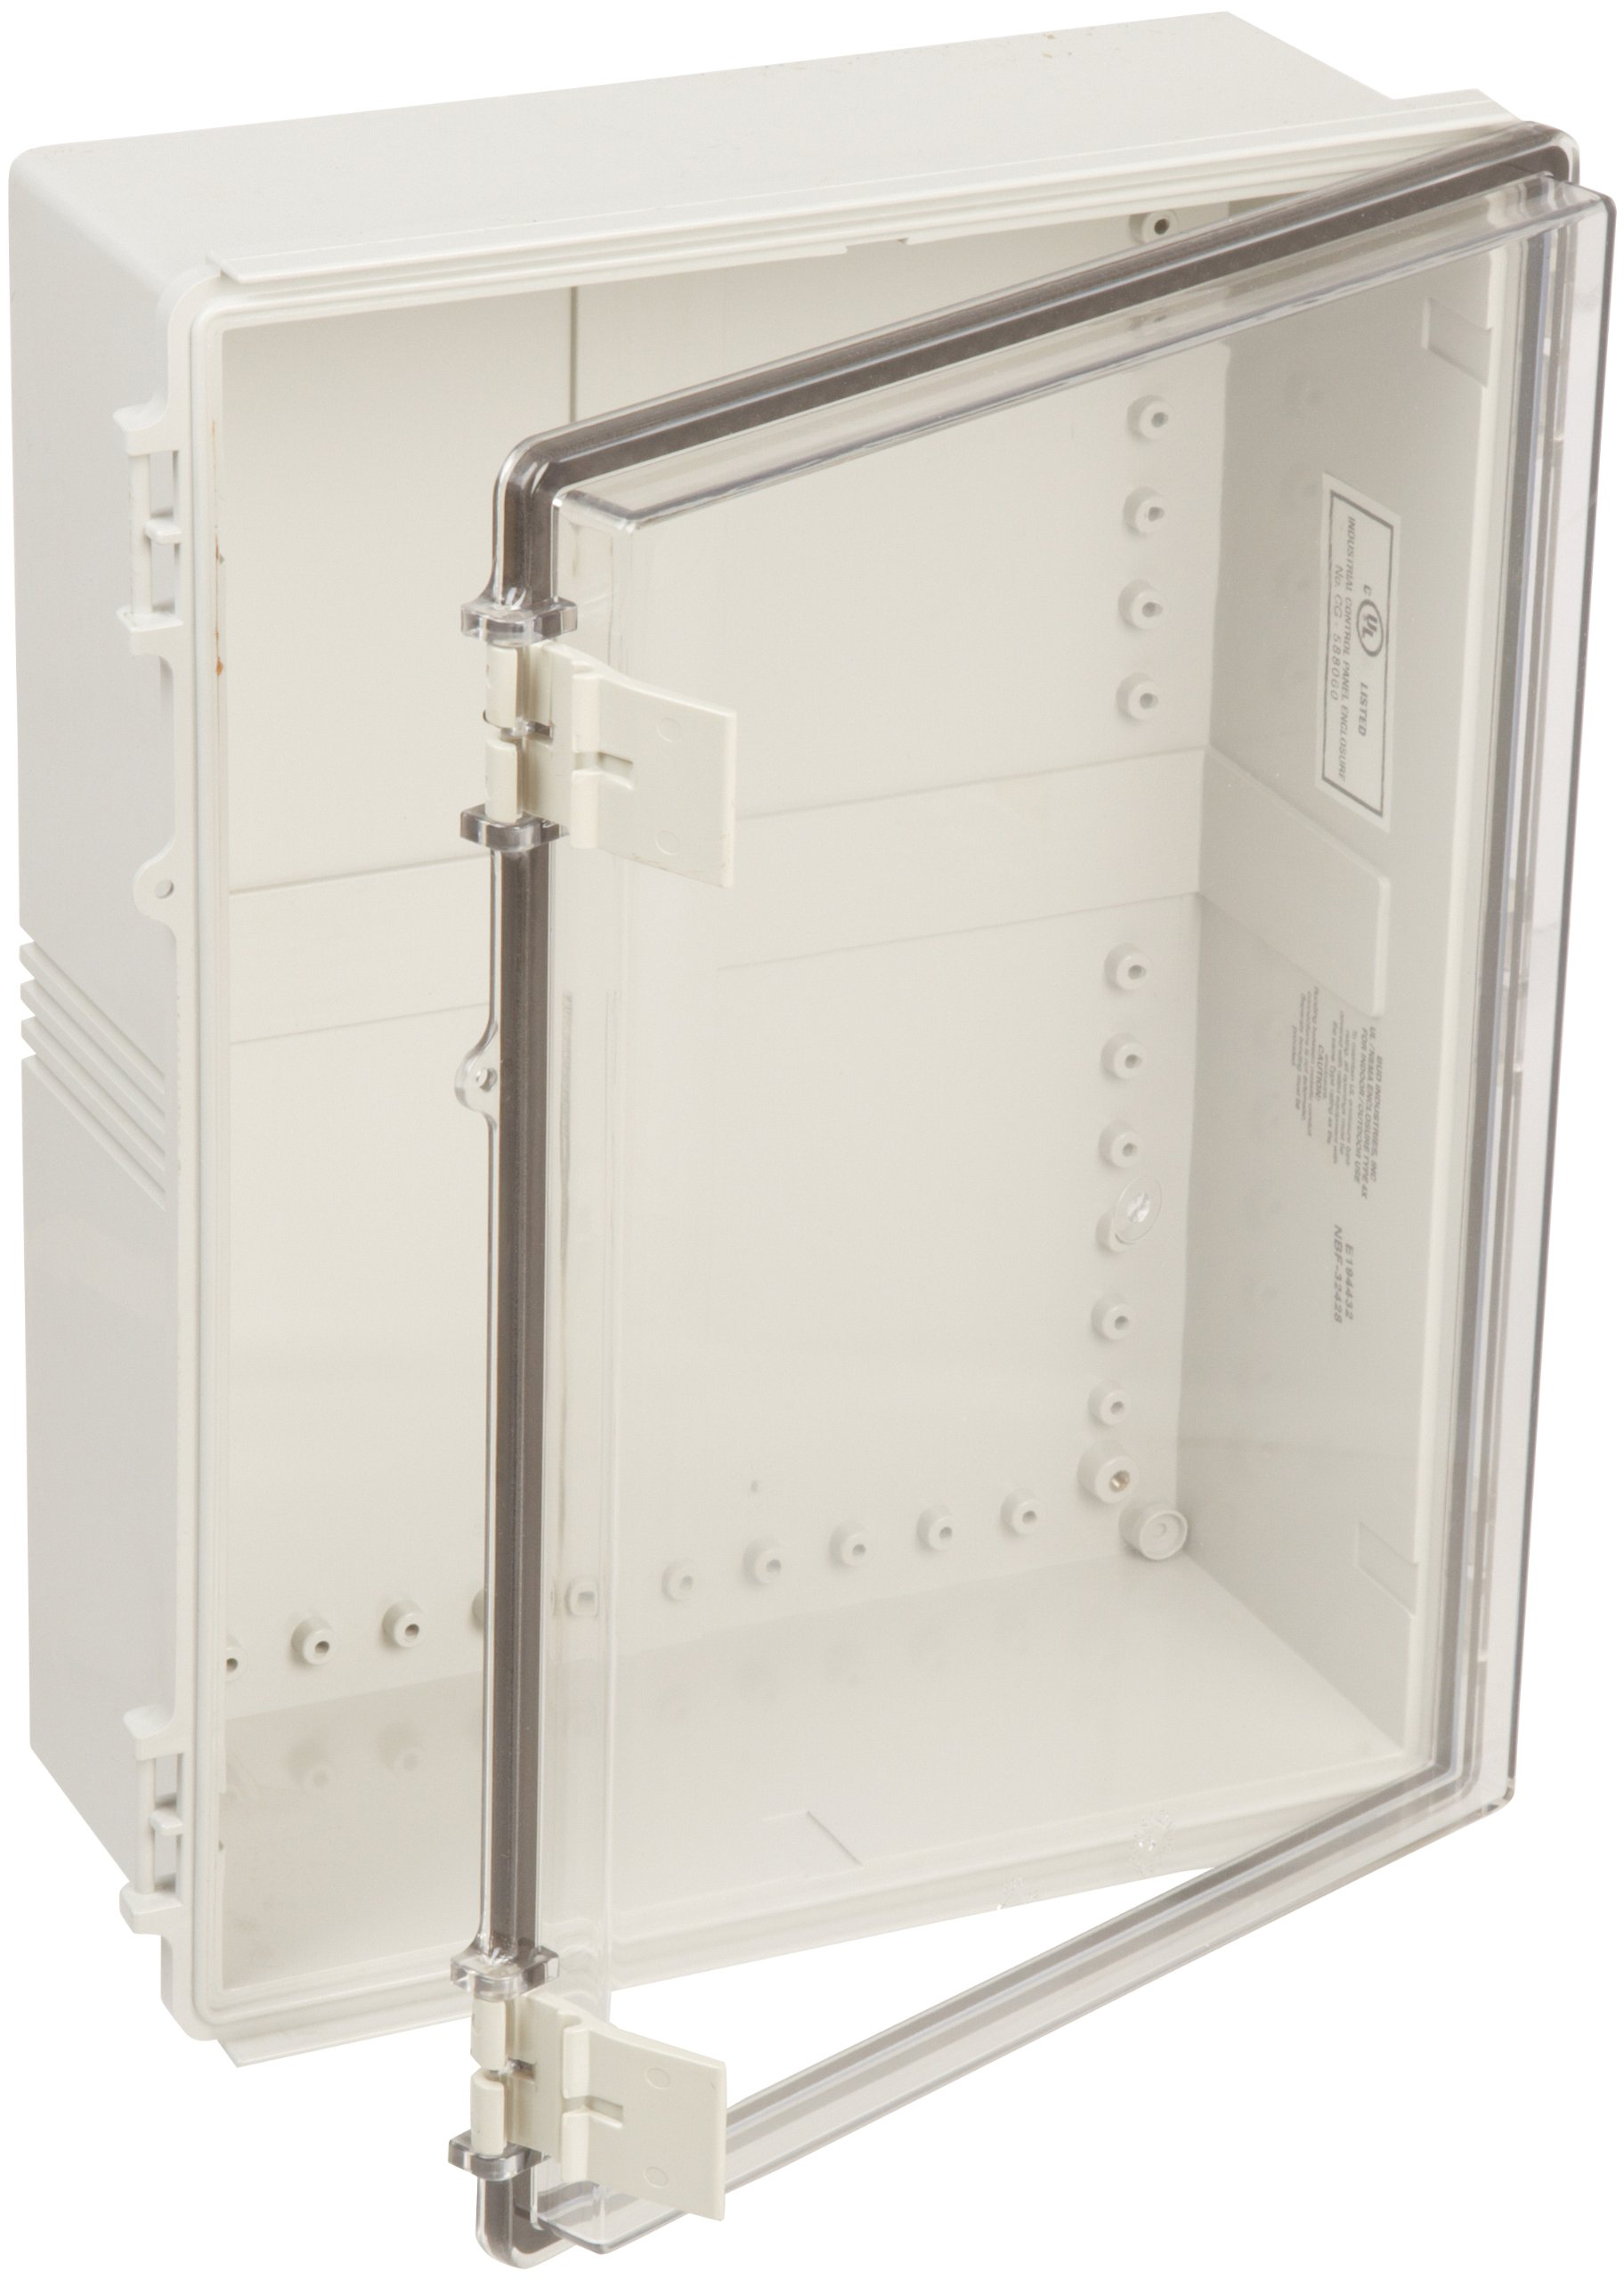 BUD Industries NBF-32428 Plastic Outdoor NEMA Economy Box with Clear Door, 17-45/64'' Length x 13-49/64'' Width x 6-9/32'' Height, Light Gray Finish by BUD Industries (Image #1)